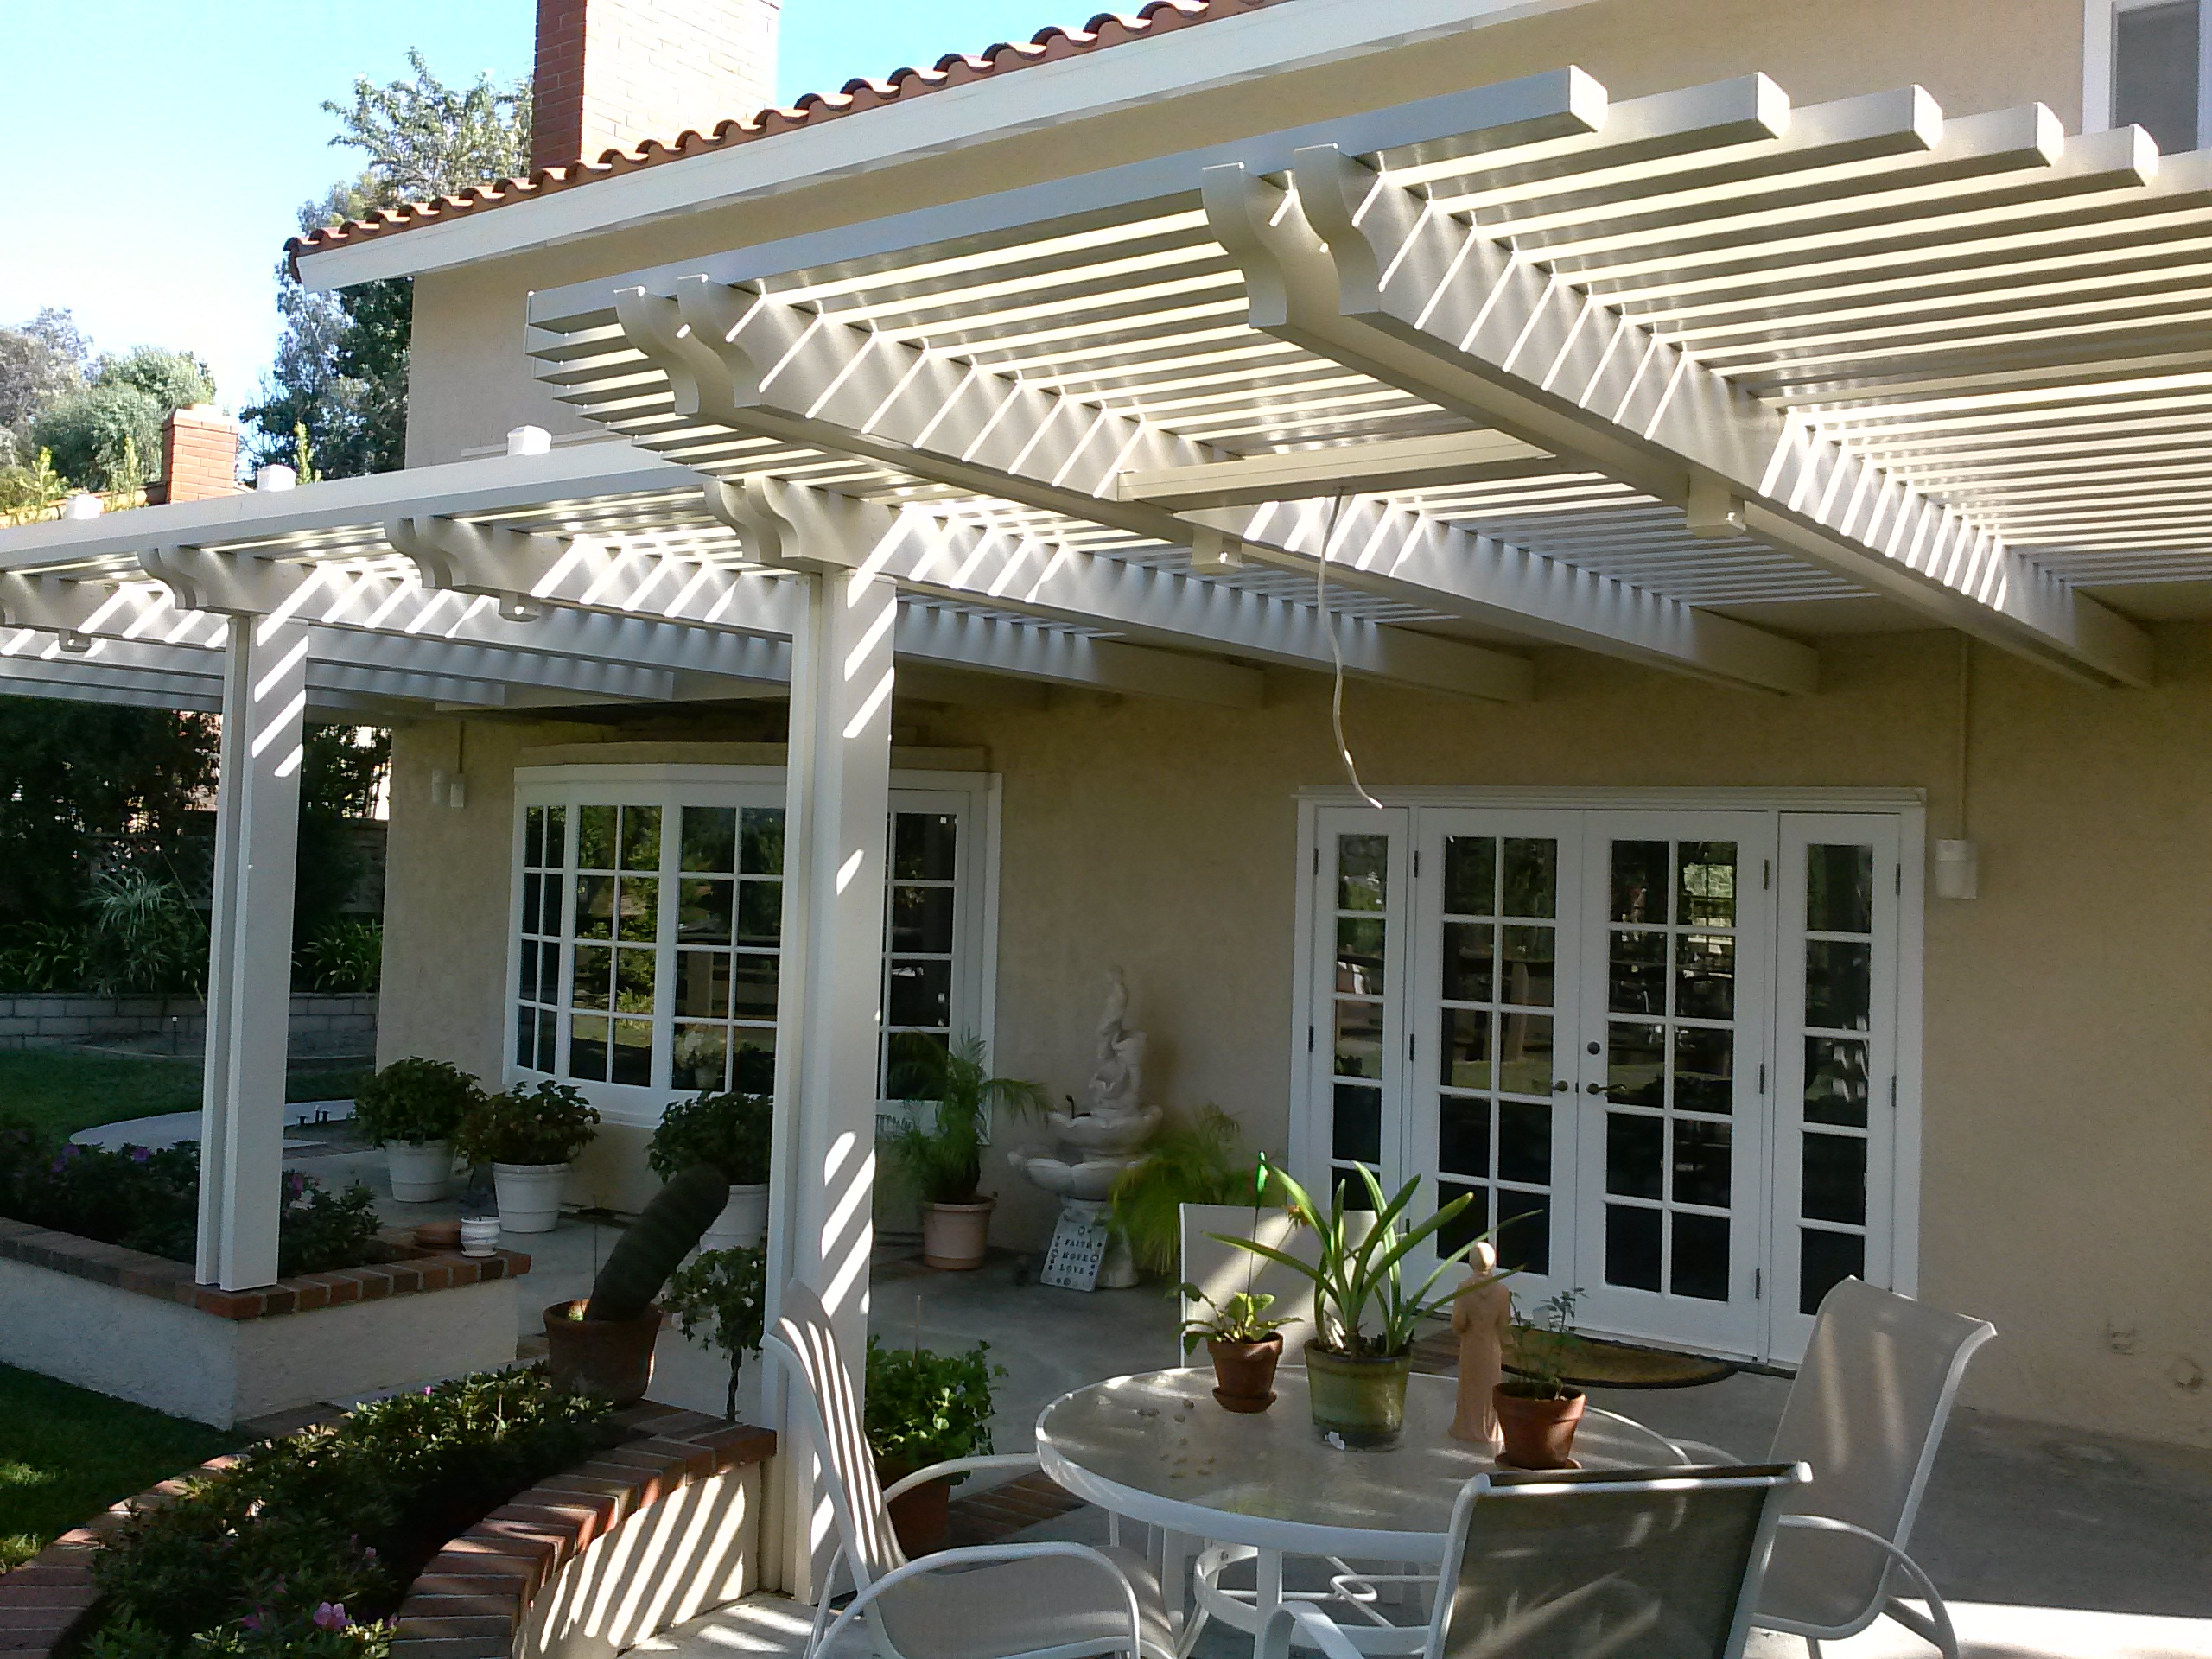 Aliso VIejo Double rafter with beams Alumawood Patio The Patio Man